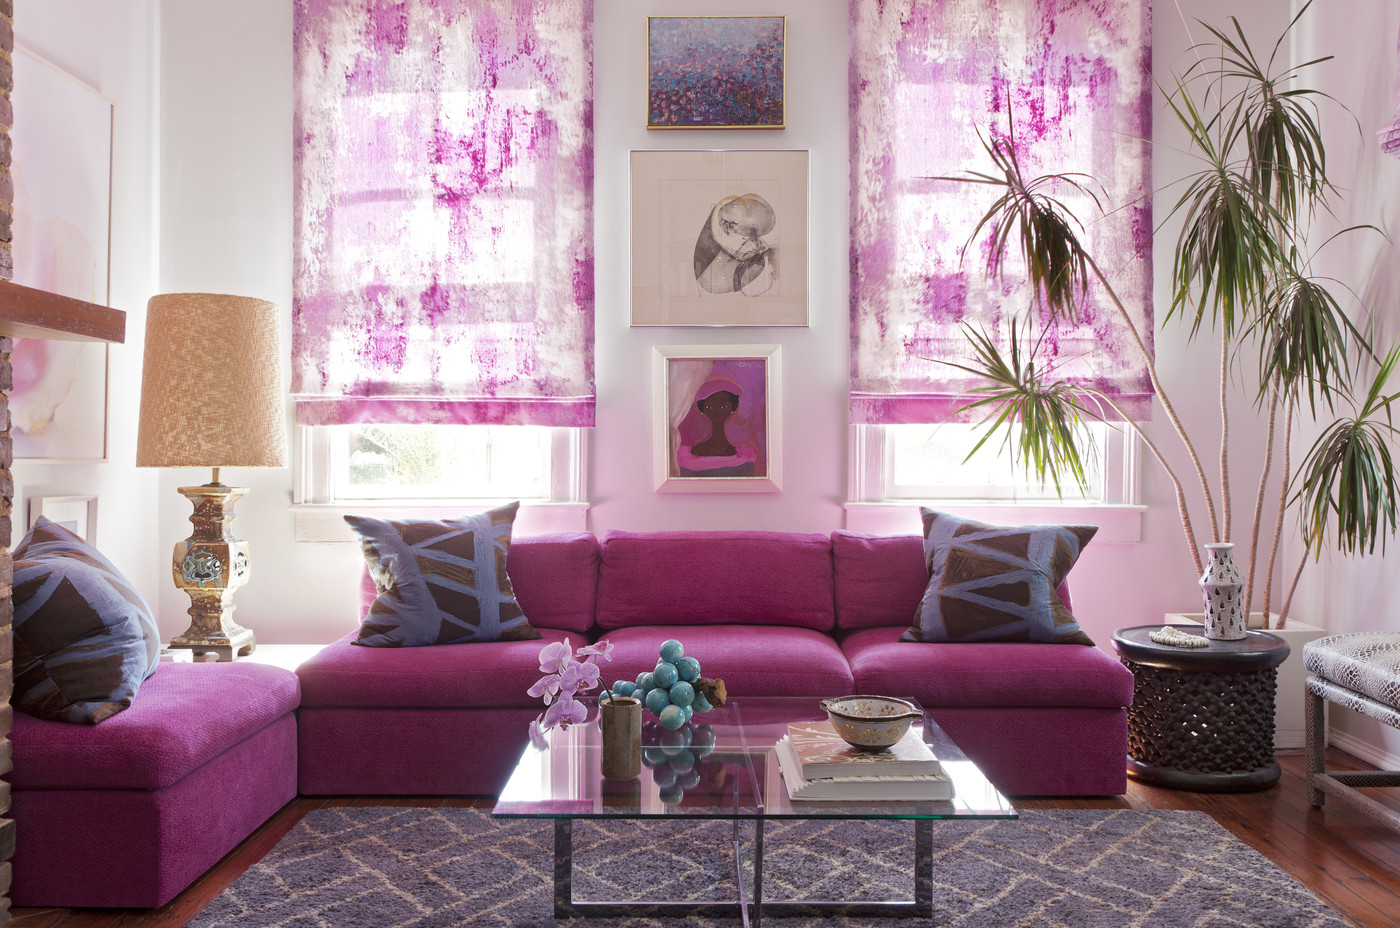 Living Room Decor Trends 2014 radiant orchid home decor ideas